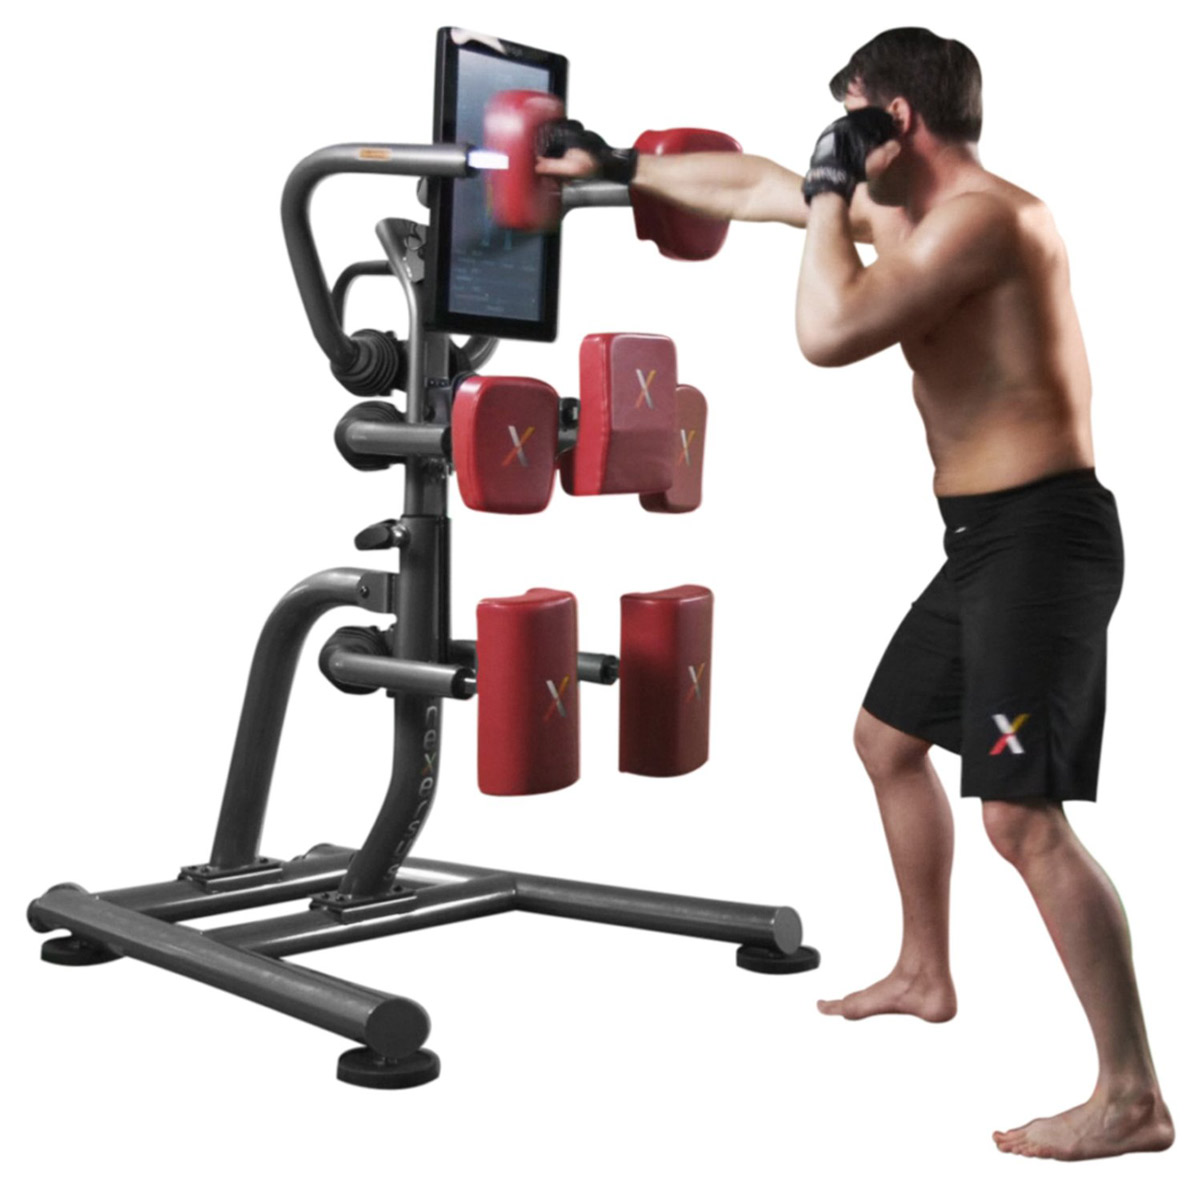 Mma Fitness Gear Equipment Home: Interactive Mixed Martial Arts Trainer